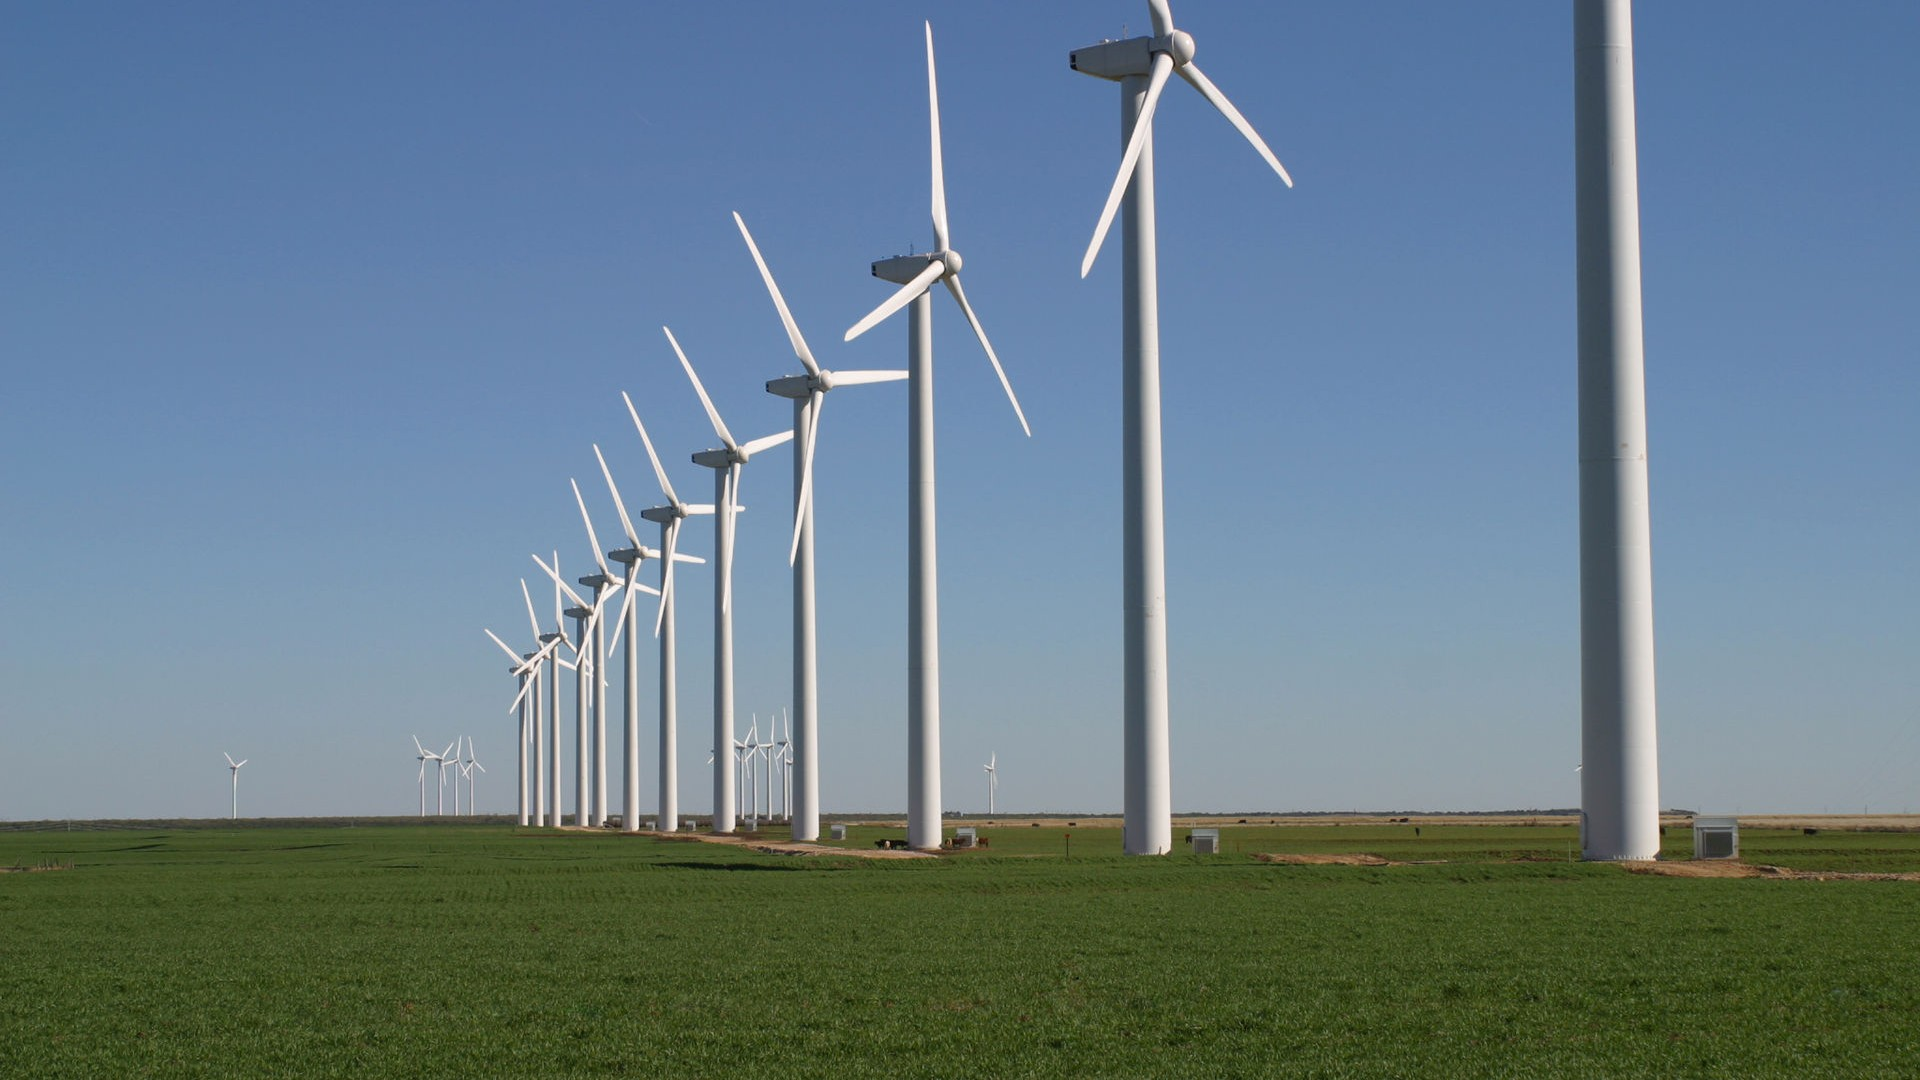 Virtual Fences Around Wind Farms Could Reduce Bird Deaths